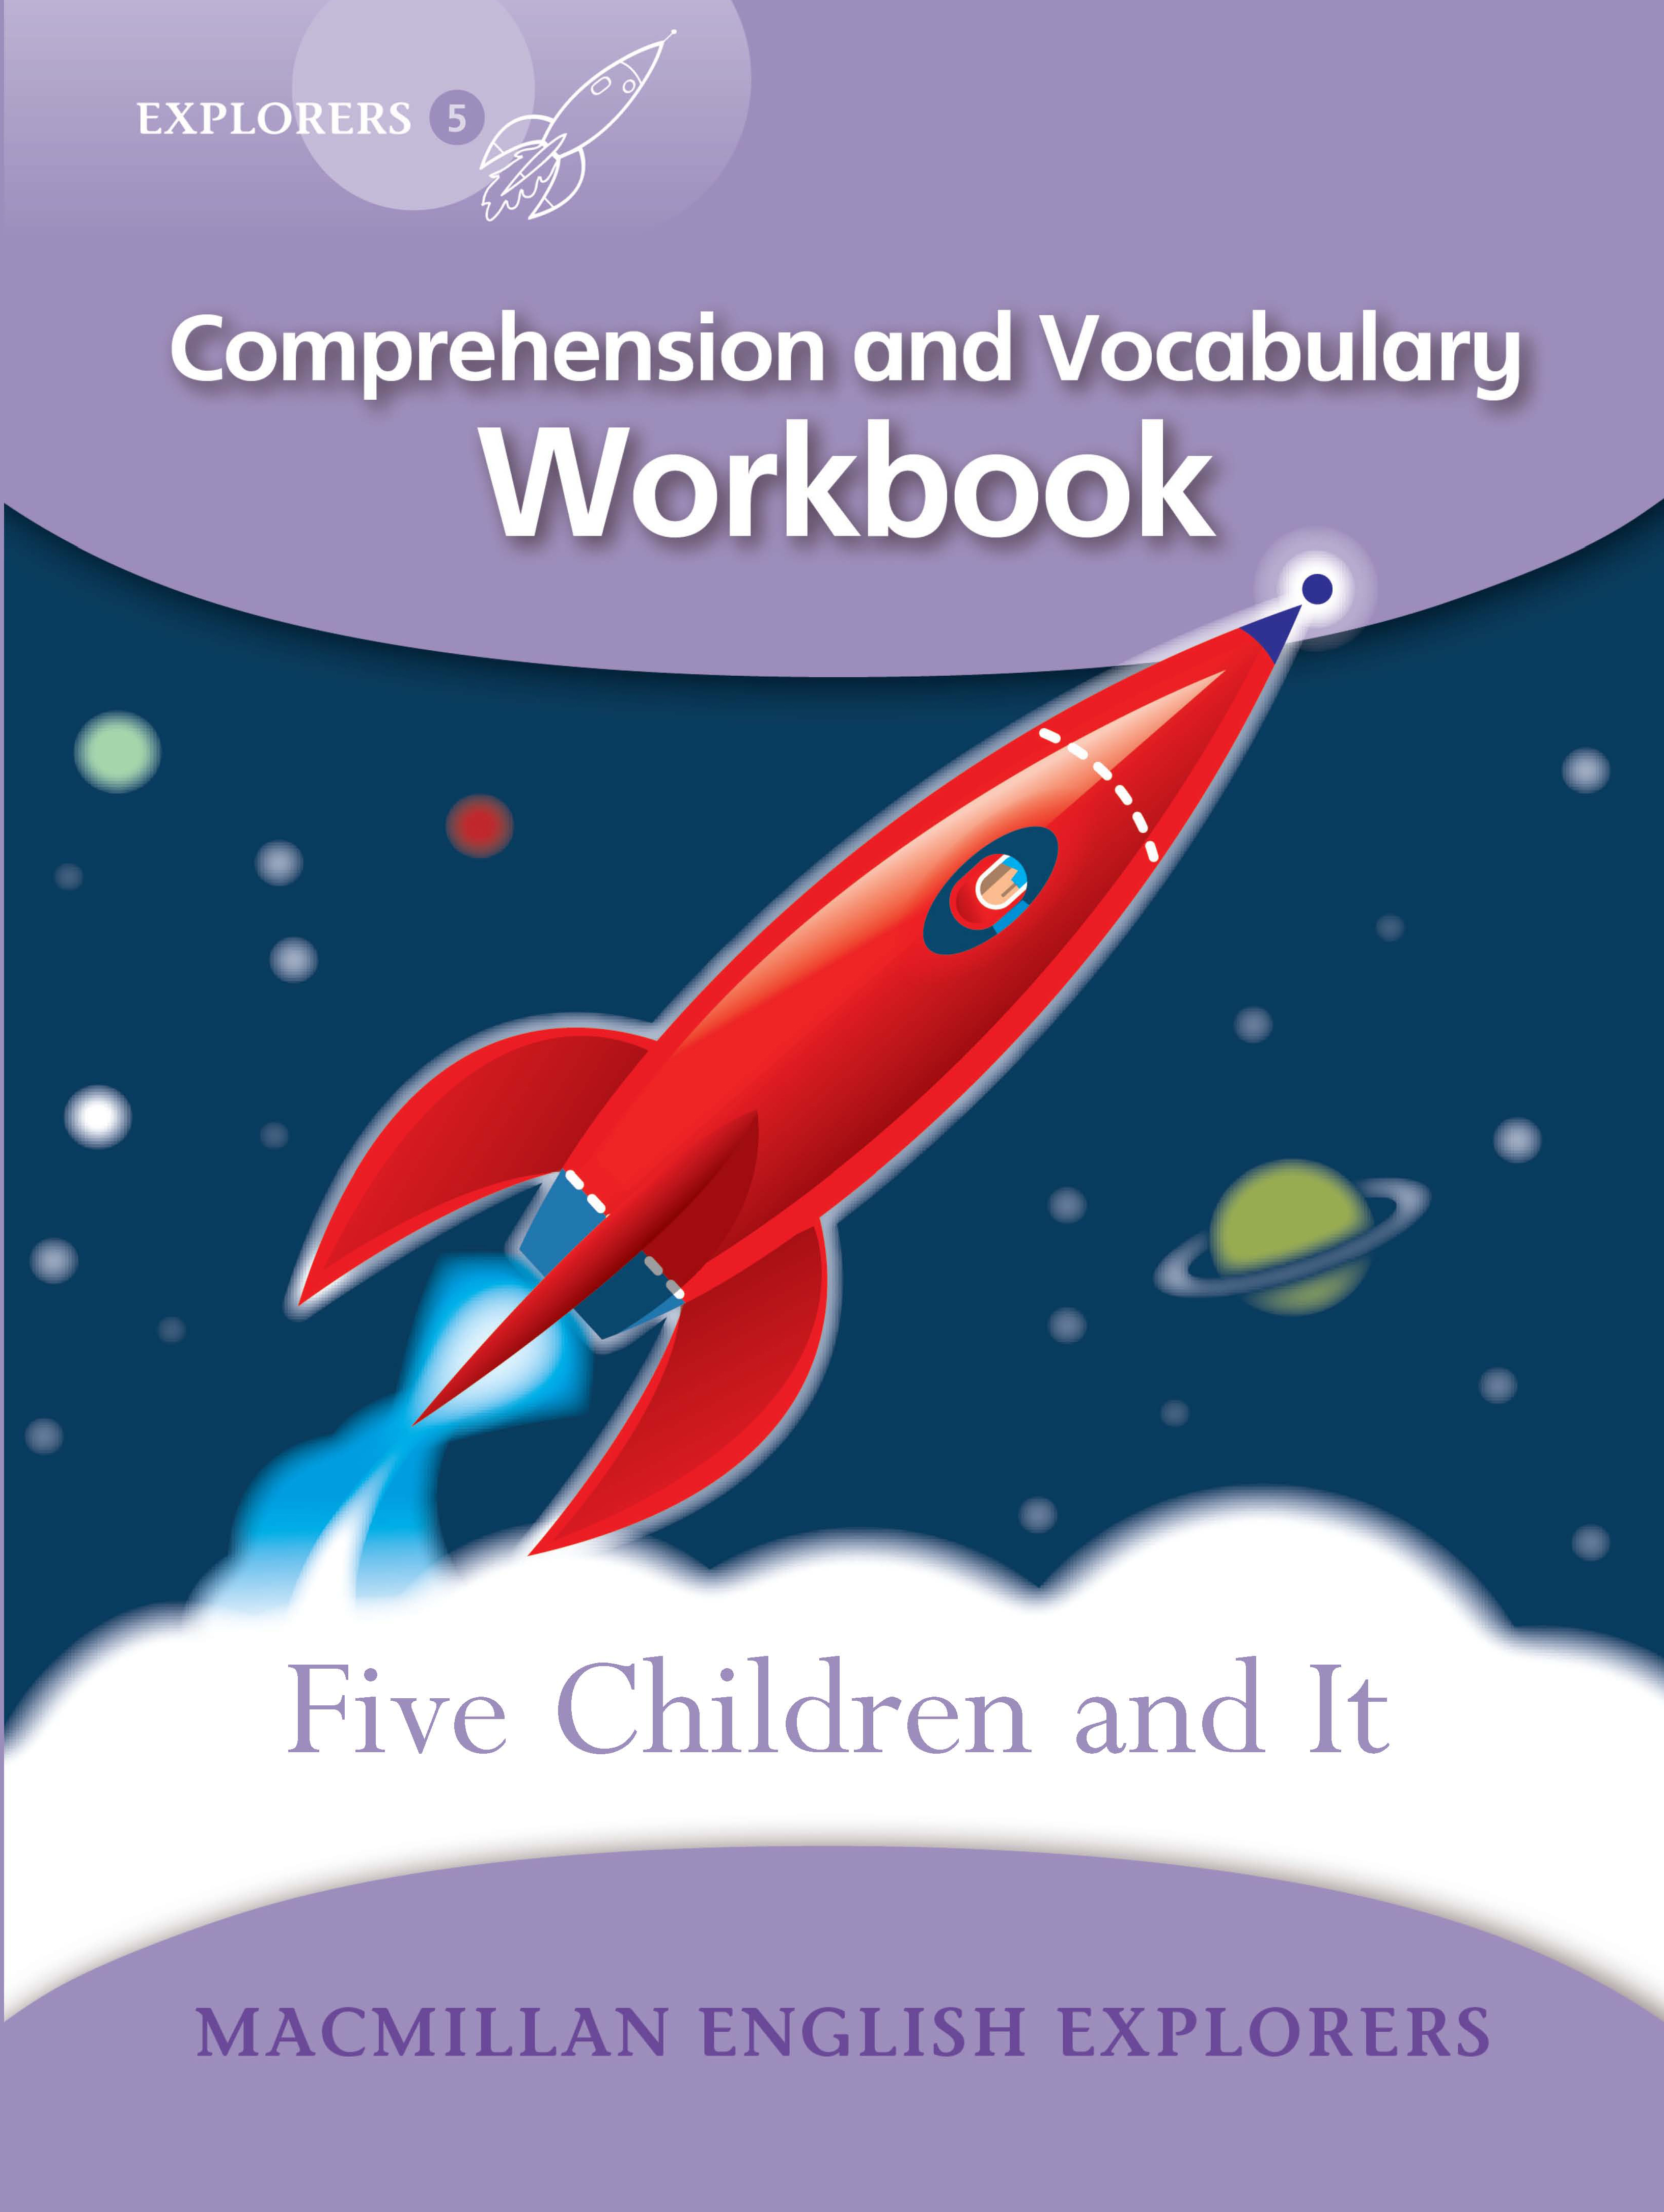 Explorers 5: Five Children and It Workbook